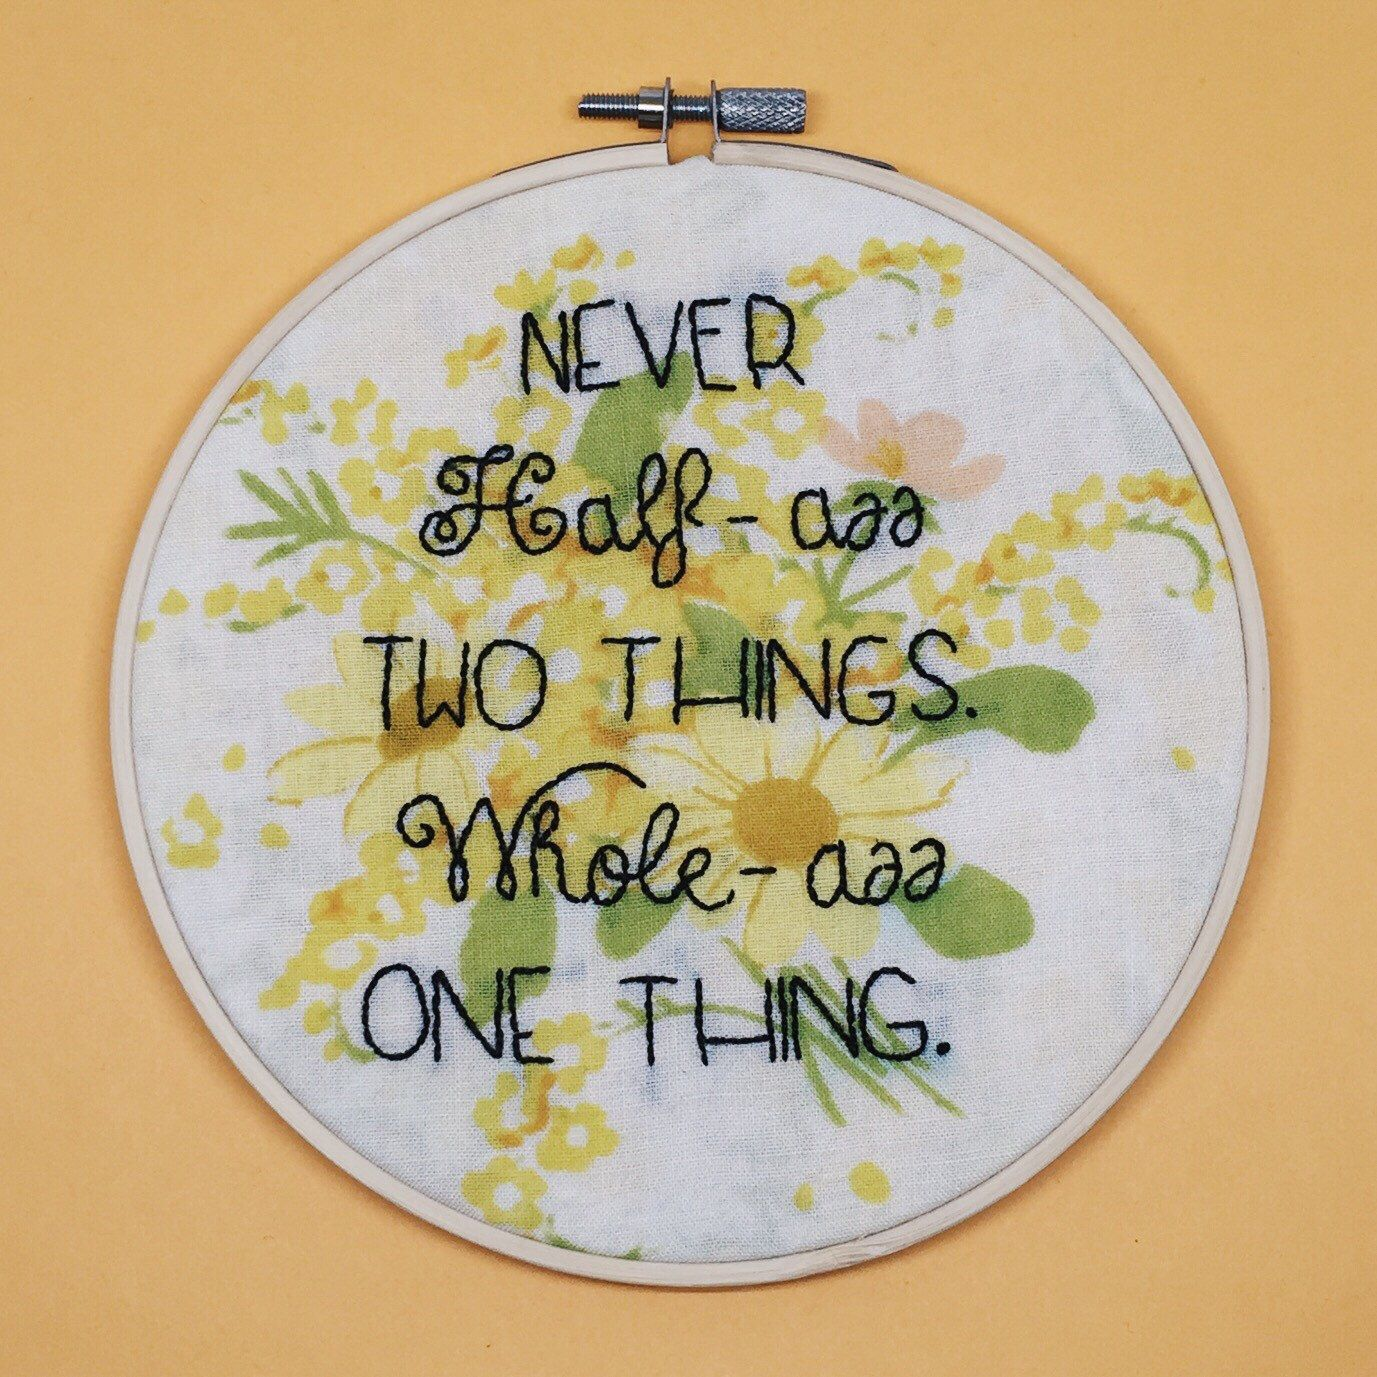 Ron swanson quote hand embroidered parks and rec wall hanging